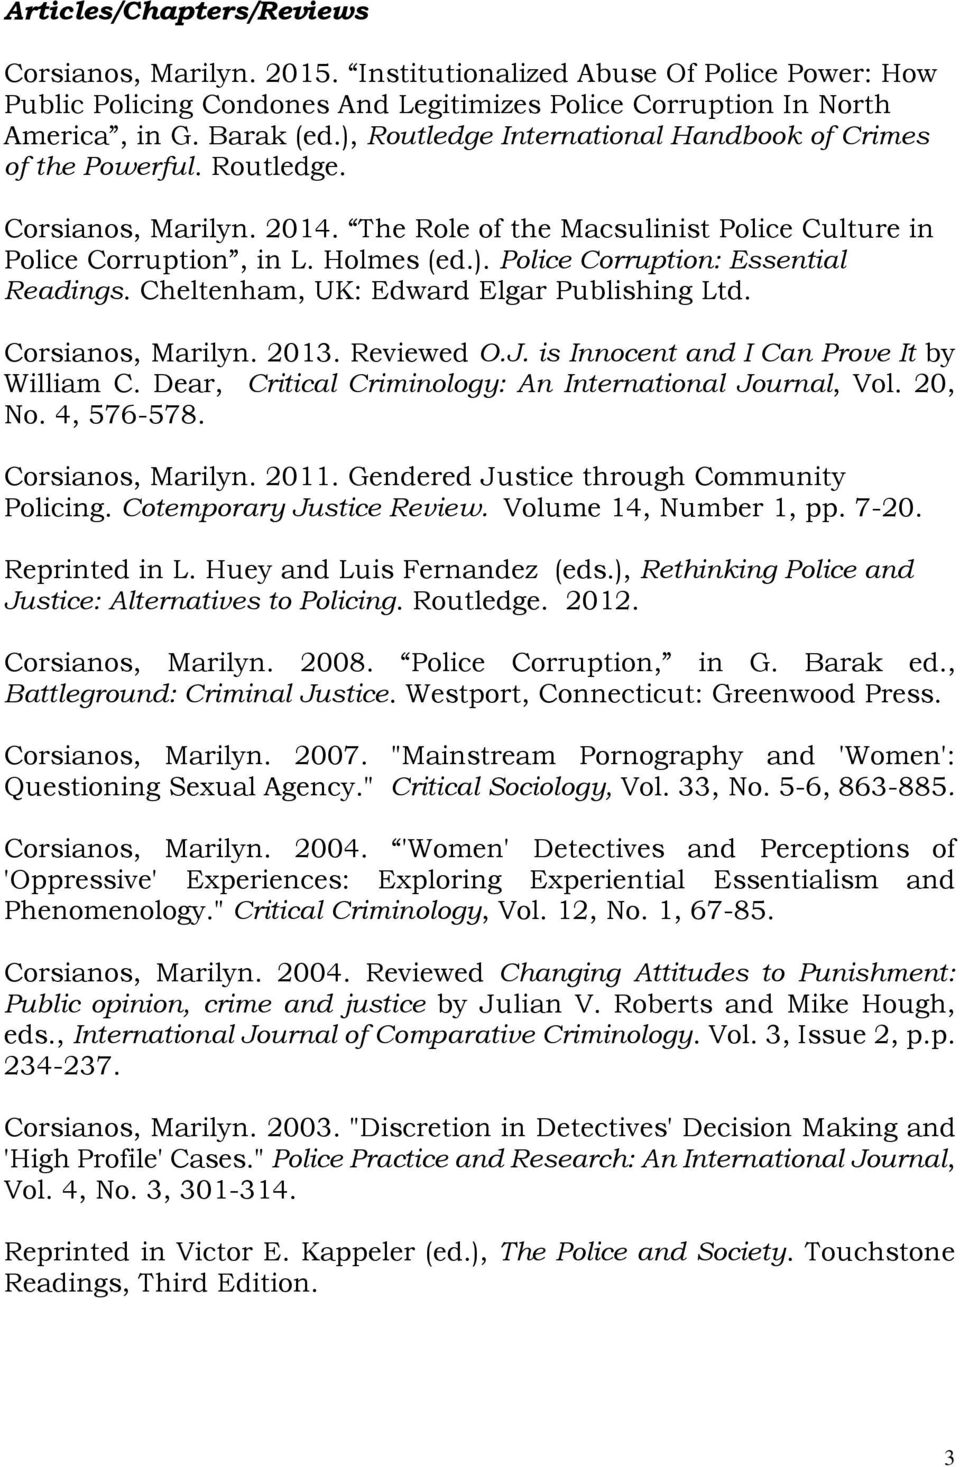 Cheltenham, UK: Edward Elgar Publishing Ltd. Corsianos, Marilyn. 2013. Reviewed O.J. is Innocent and I Can Prove It by William C. Dear, Critical Criminology: An International Journal, Vol. 20, No.